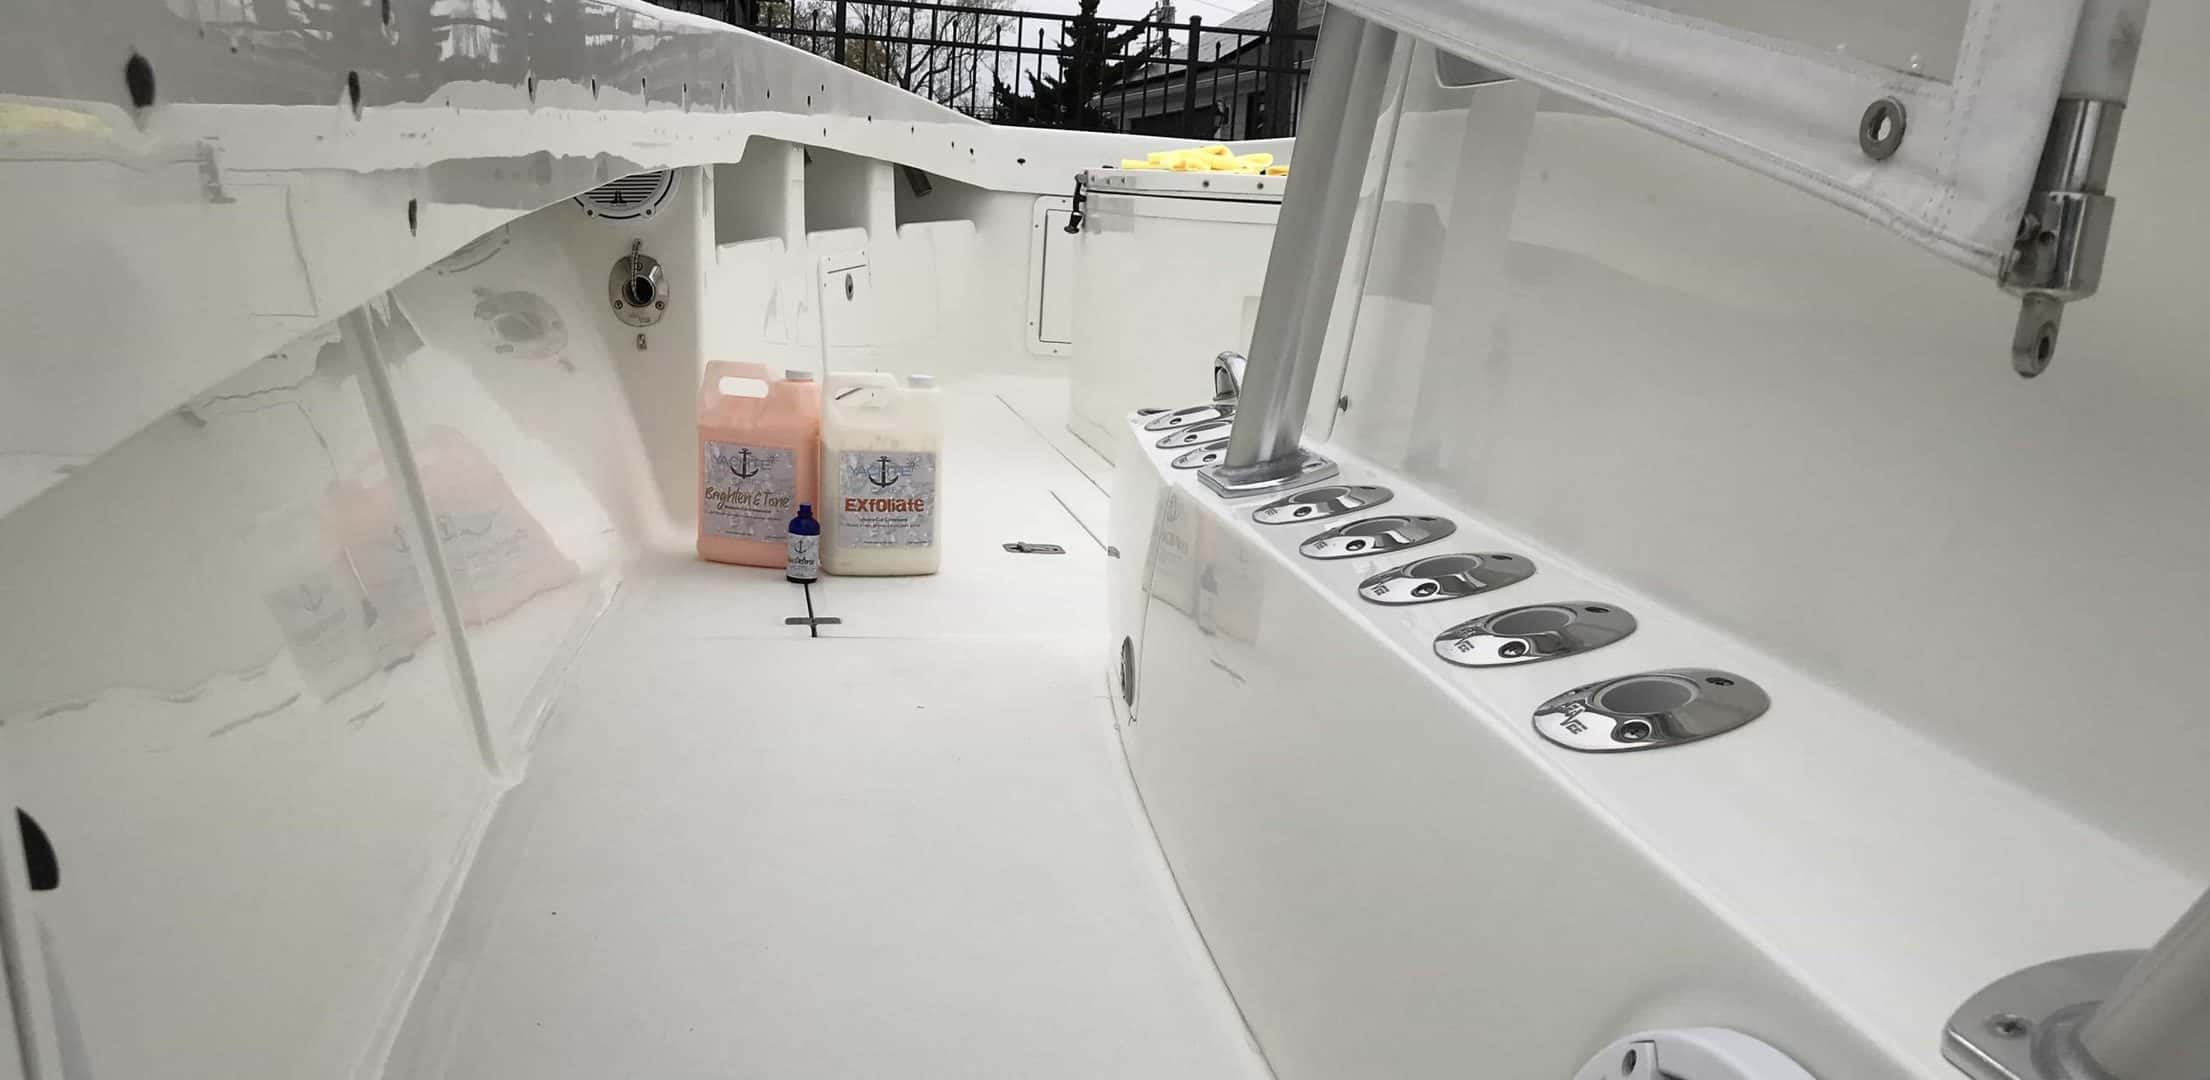 a boat detailing product for every detailing need